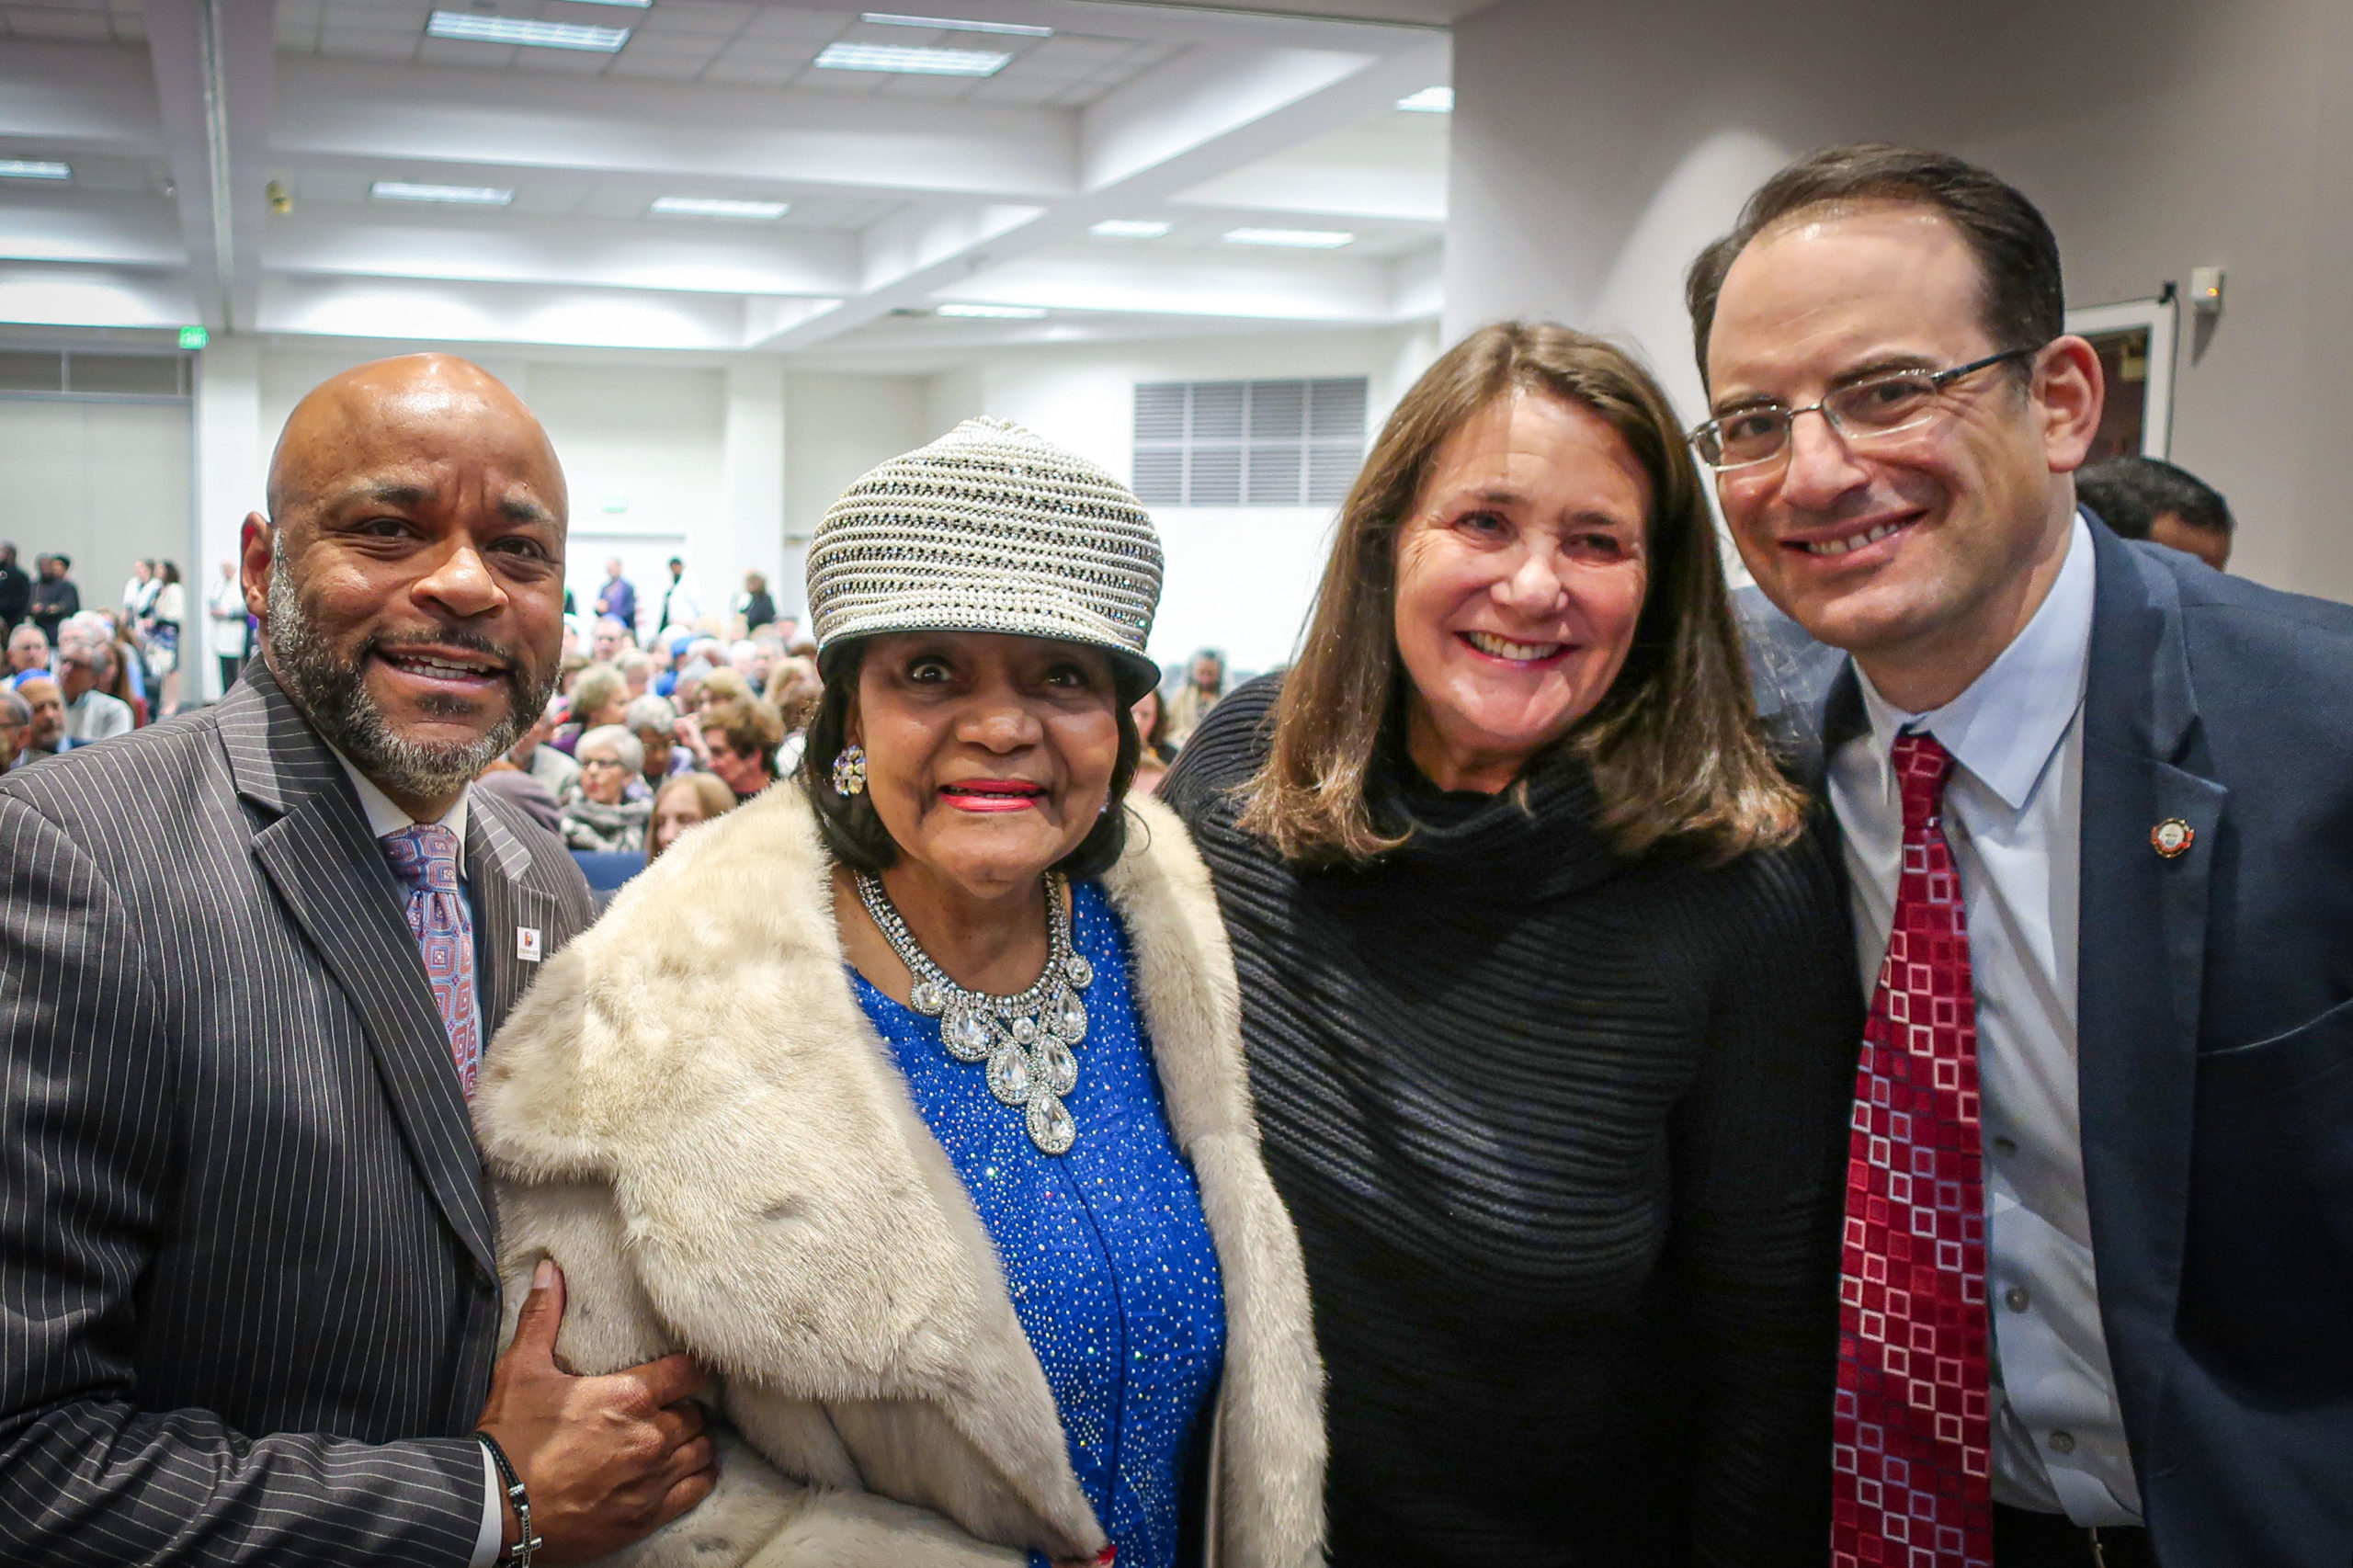 Denver Mayor Michael Hancock, left, and Congresswoman Diana DeGette and Colorado Attorney General Phil Weiser, right, were among those in attendance at a celebration of Dr. Martin Luther King Jr. at Temple Sinai in Denver.